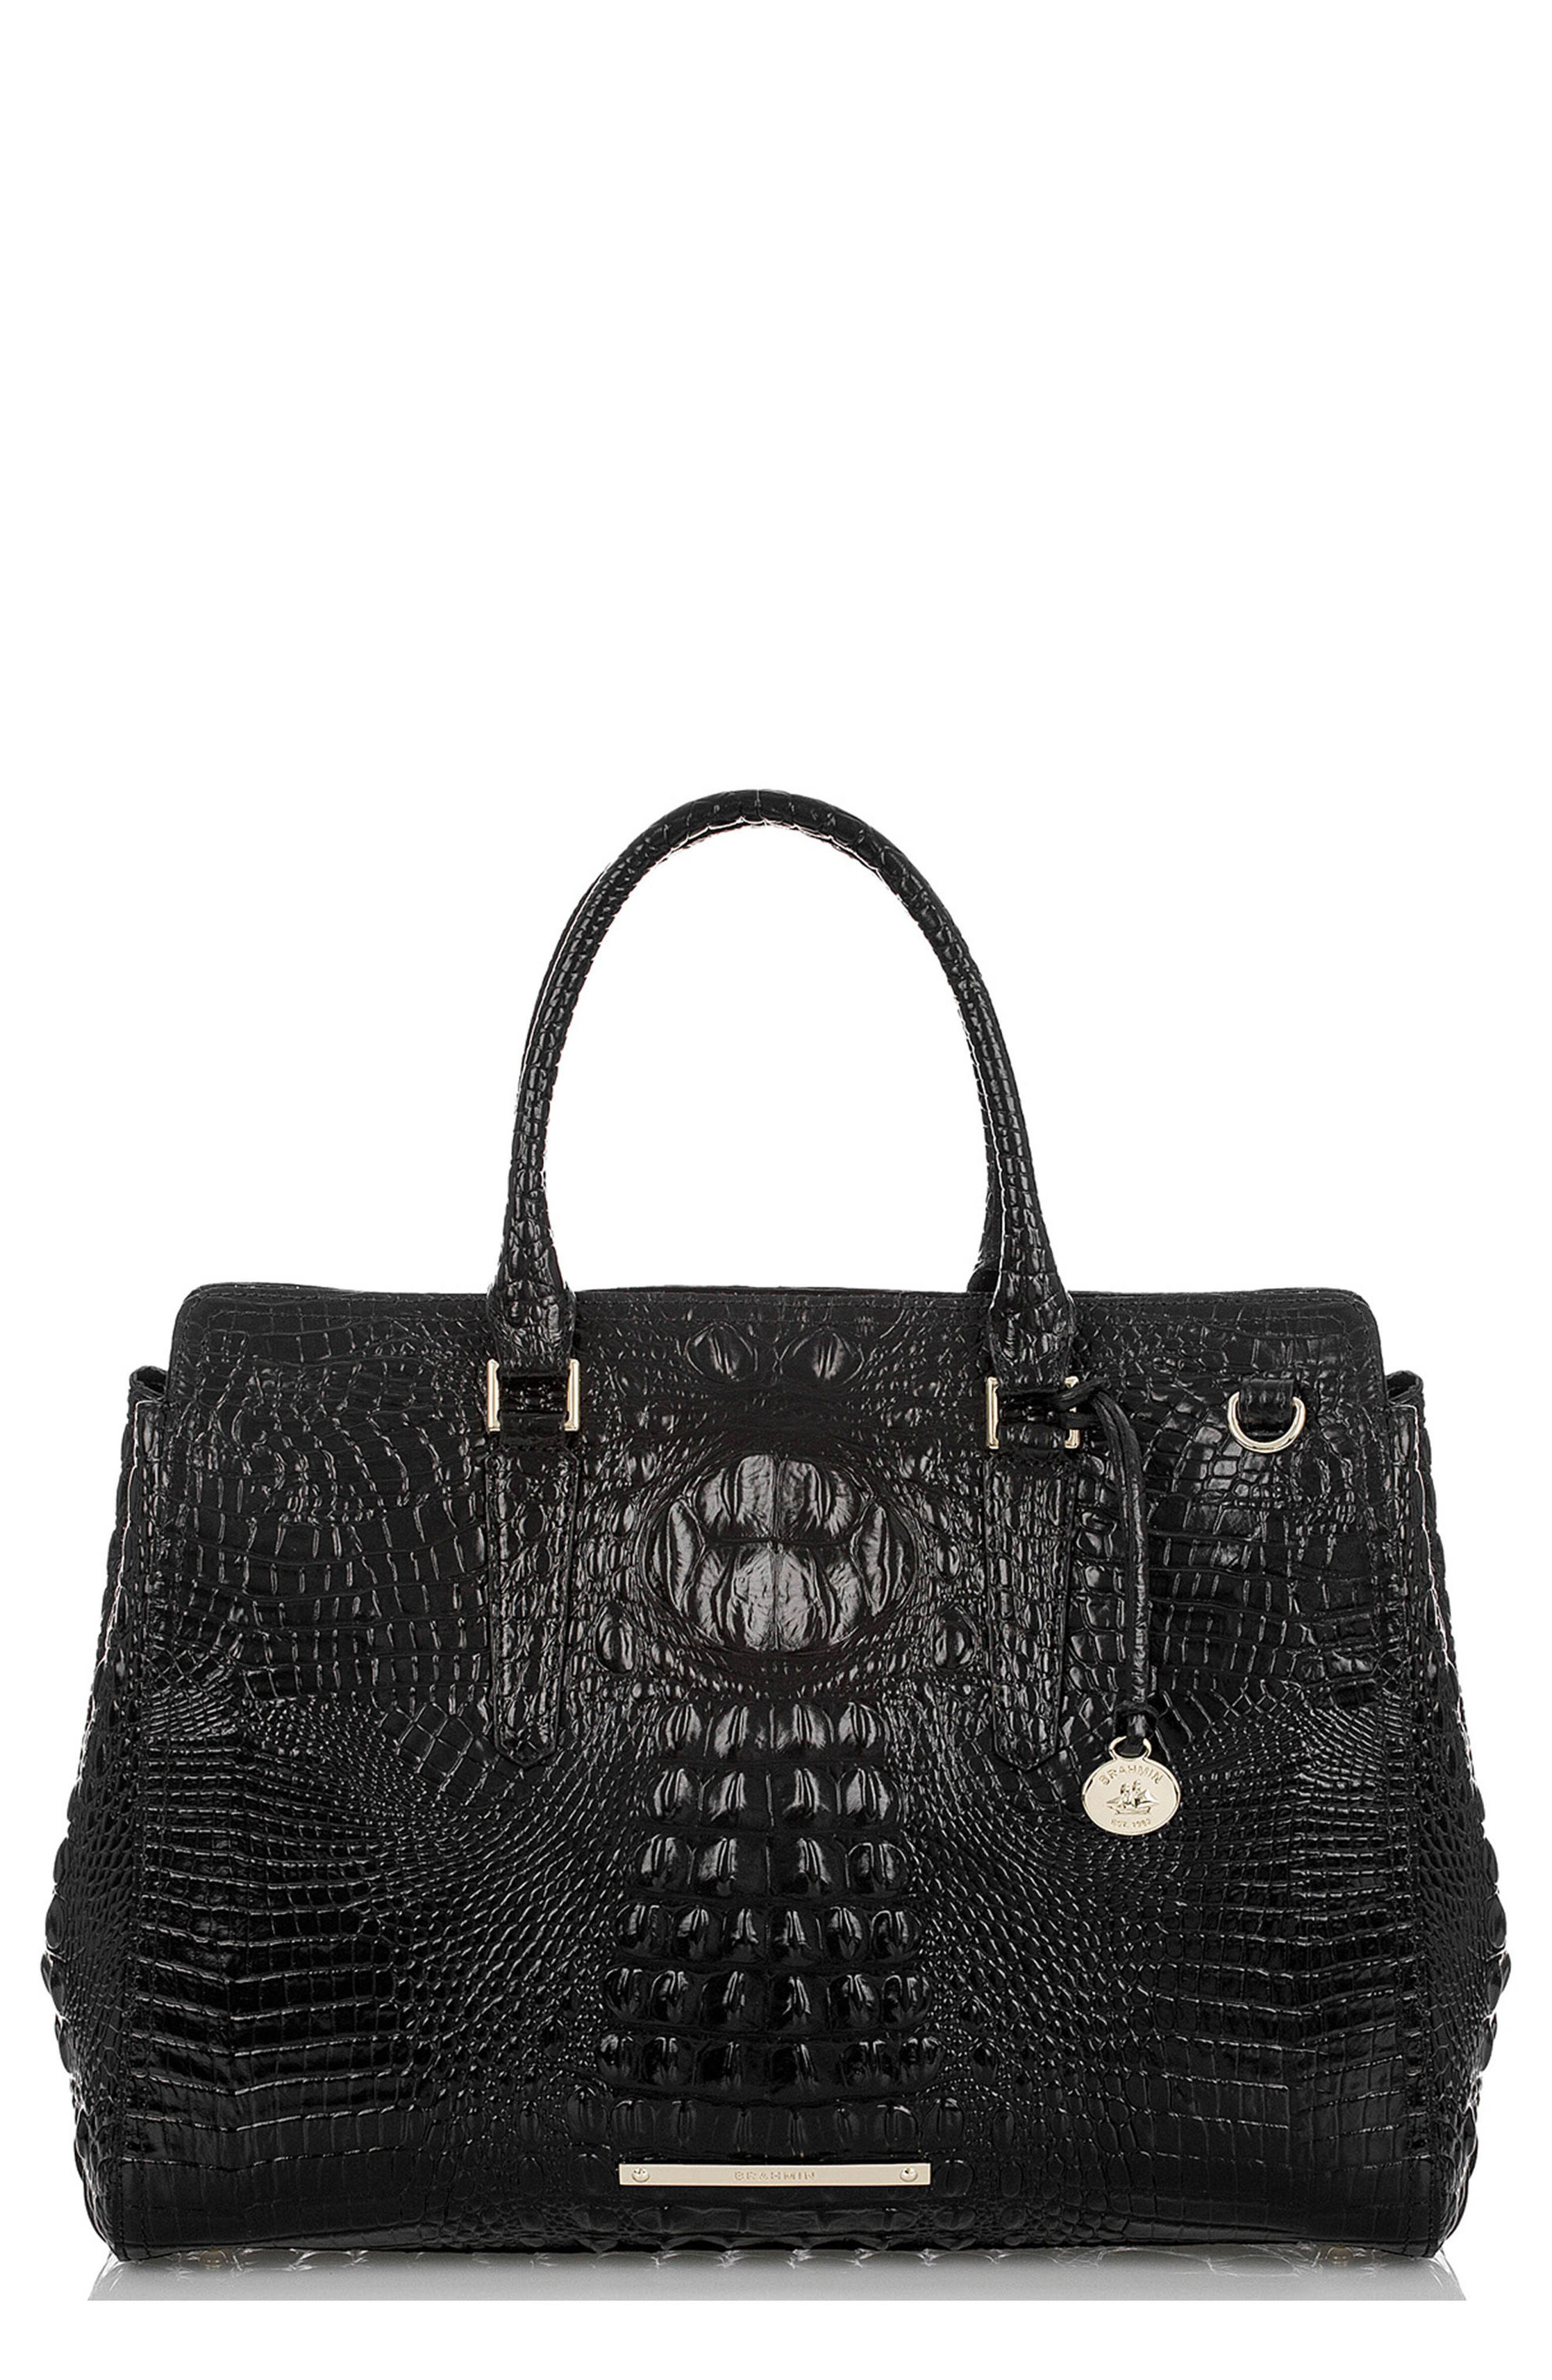 BRAHMIN, Finley Croc Embossed Leather Tote, Main thumbnail 1, color, 001